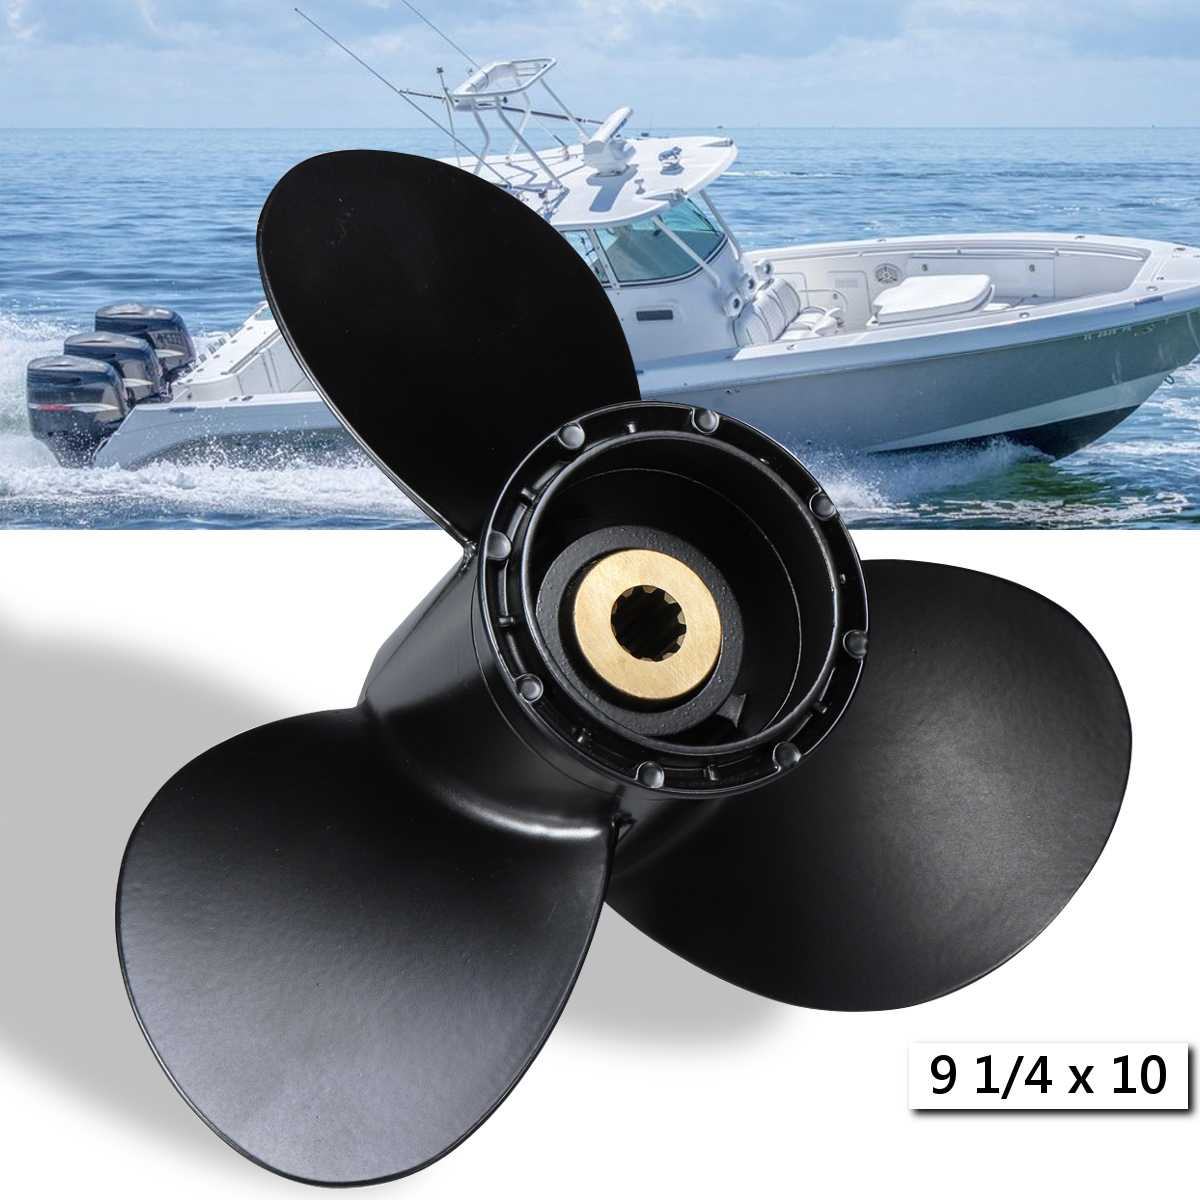 9 1/4 X 10 Outboard Propeller 58100-93733-019 For Suzuki 8-20HP Boat Aluminum Alloy Black 3 Blades 10 Spline Tooth Propellers